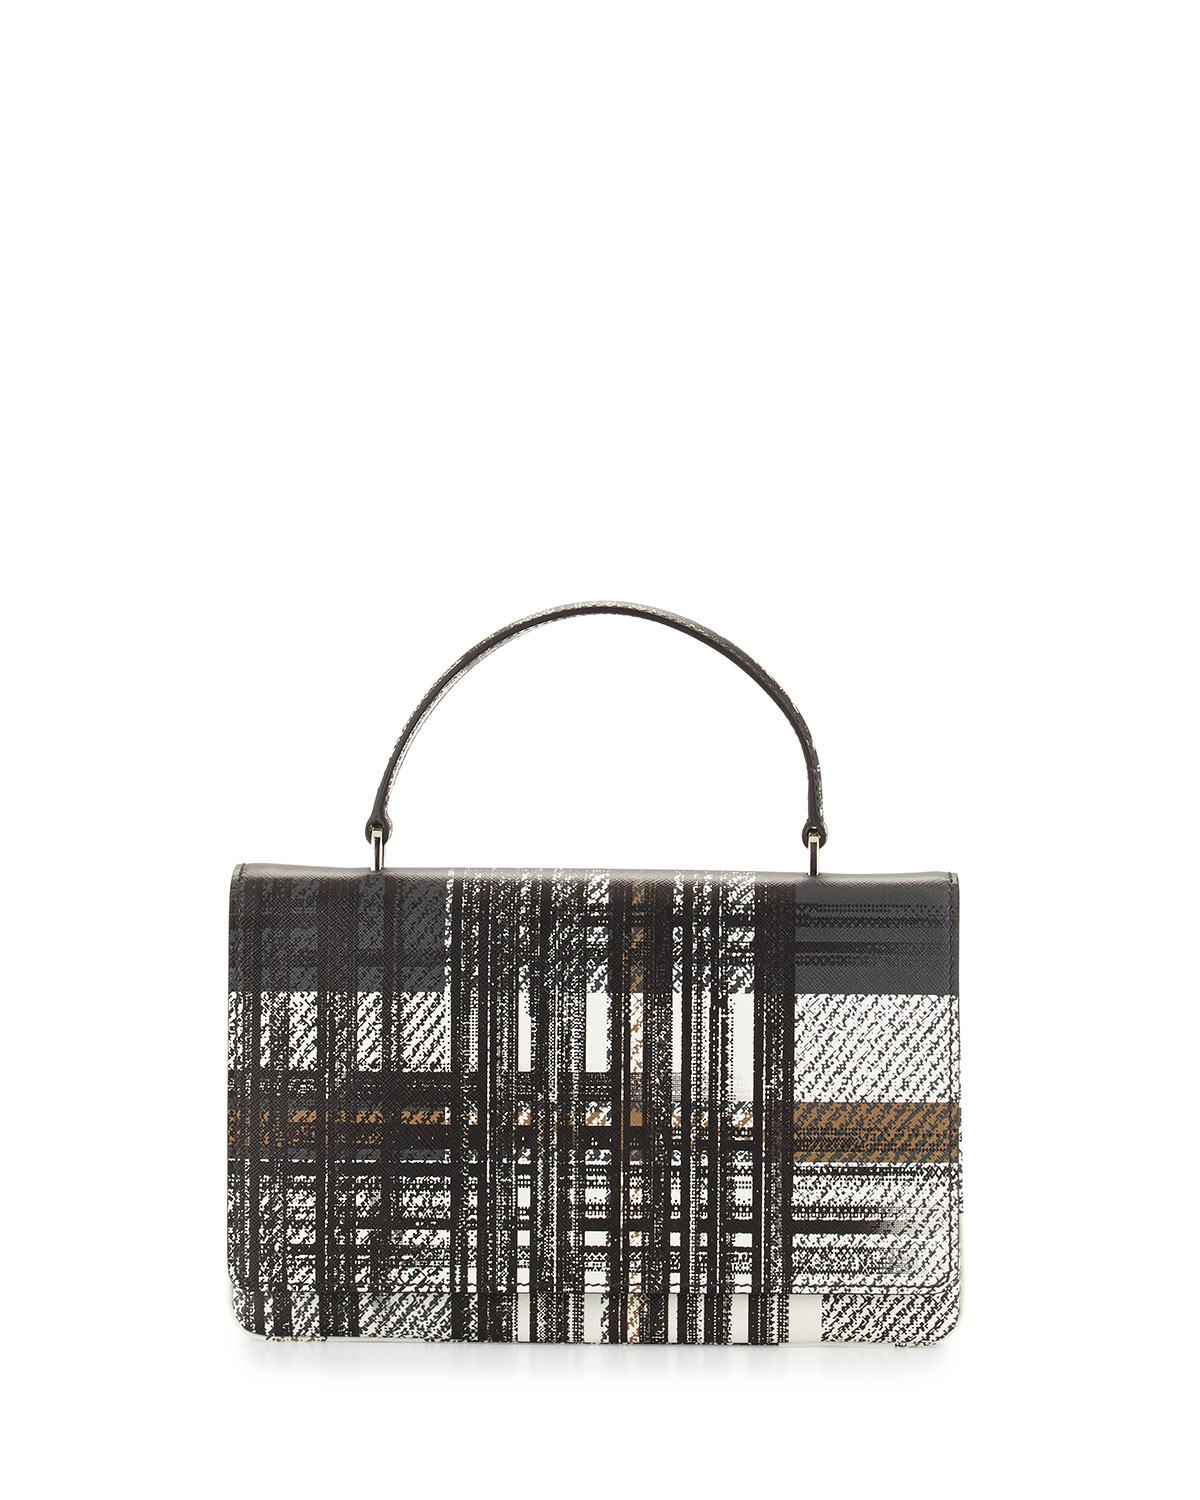 Prada Tartan Plaid Saffiano Top-Handle Bag in White | Lyst